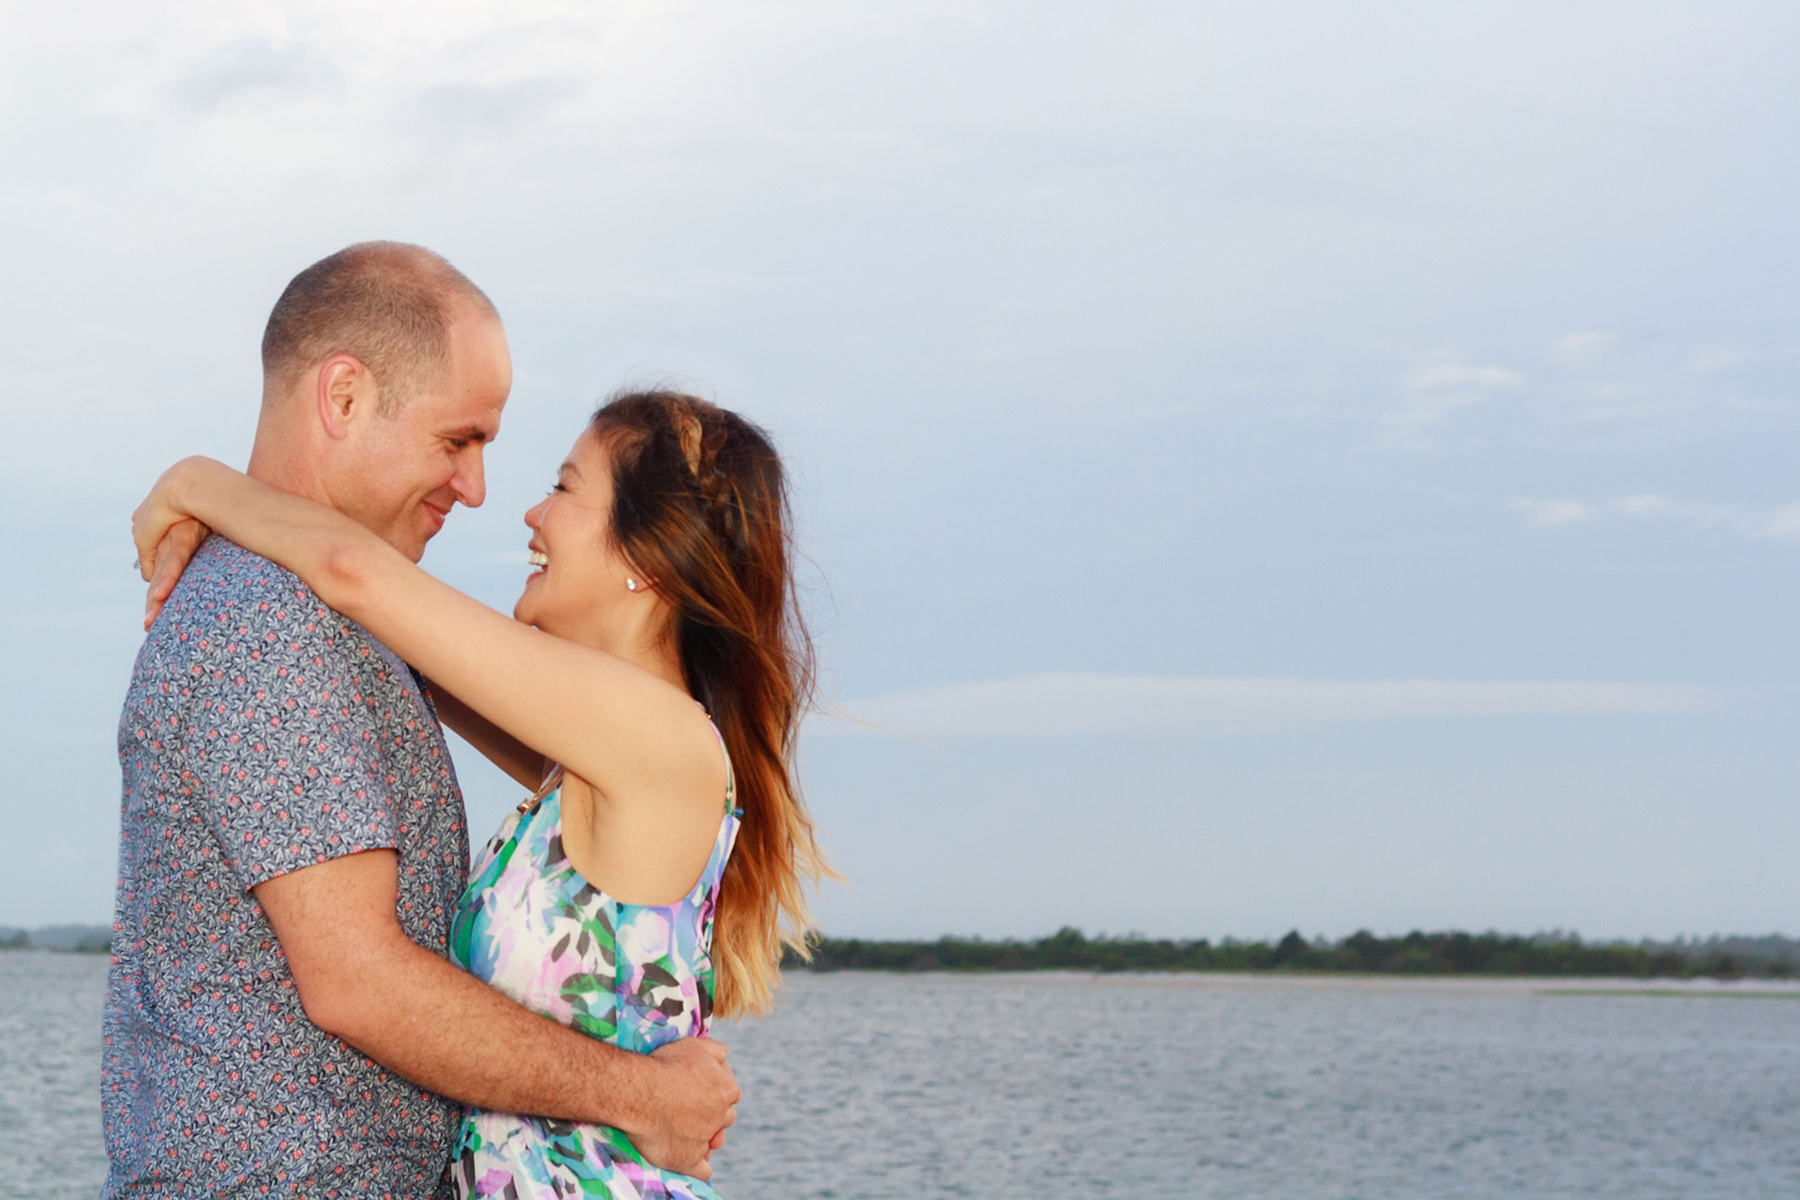 Airlie_Gardens_Engagement_Photography_Brian_&_Amy_070.png